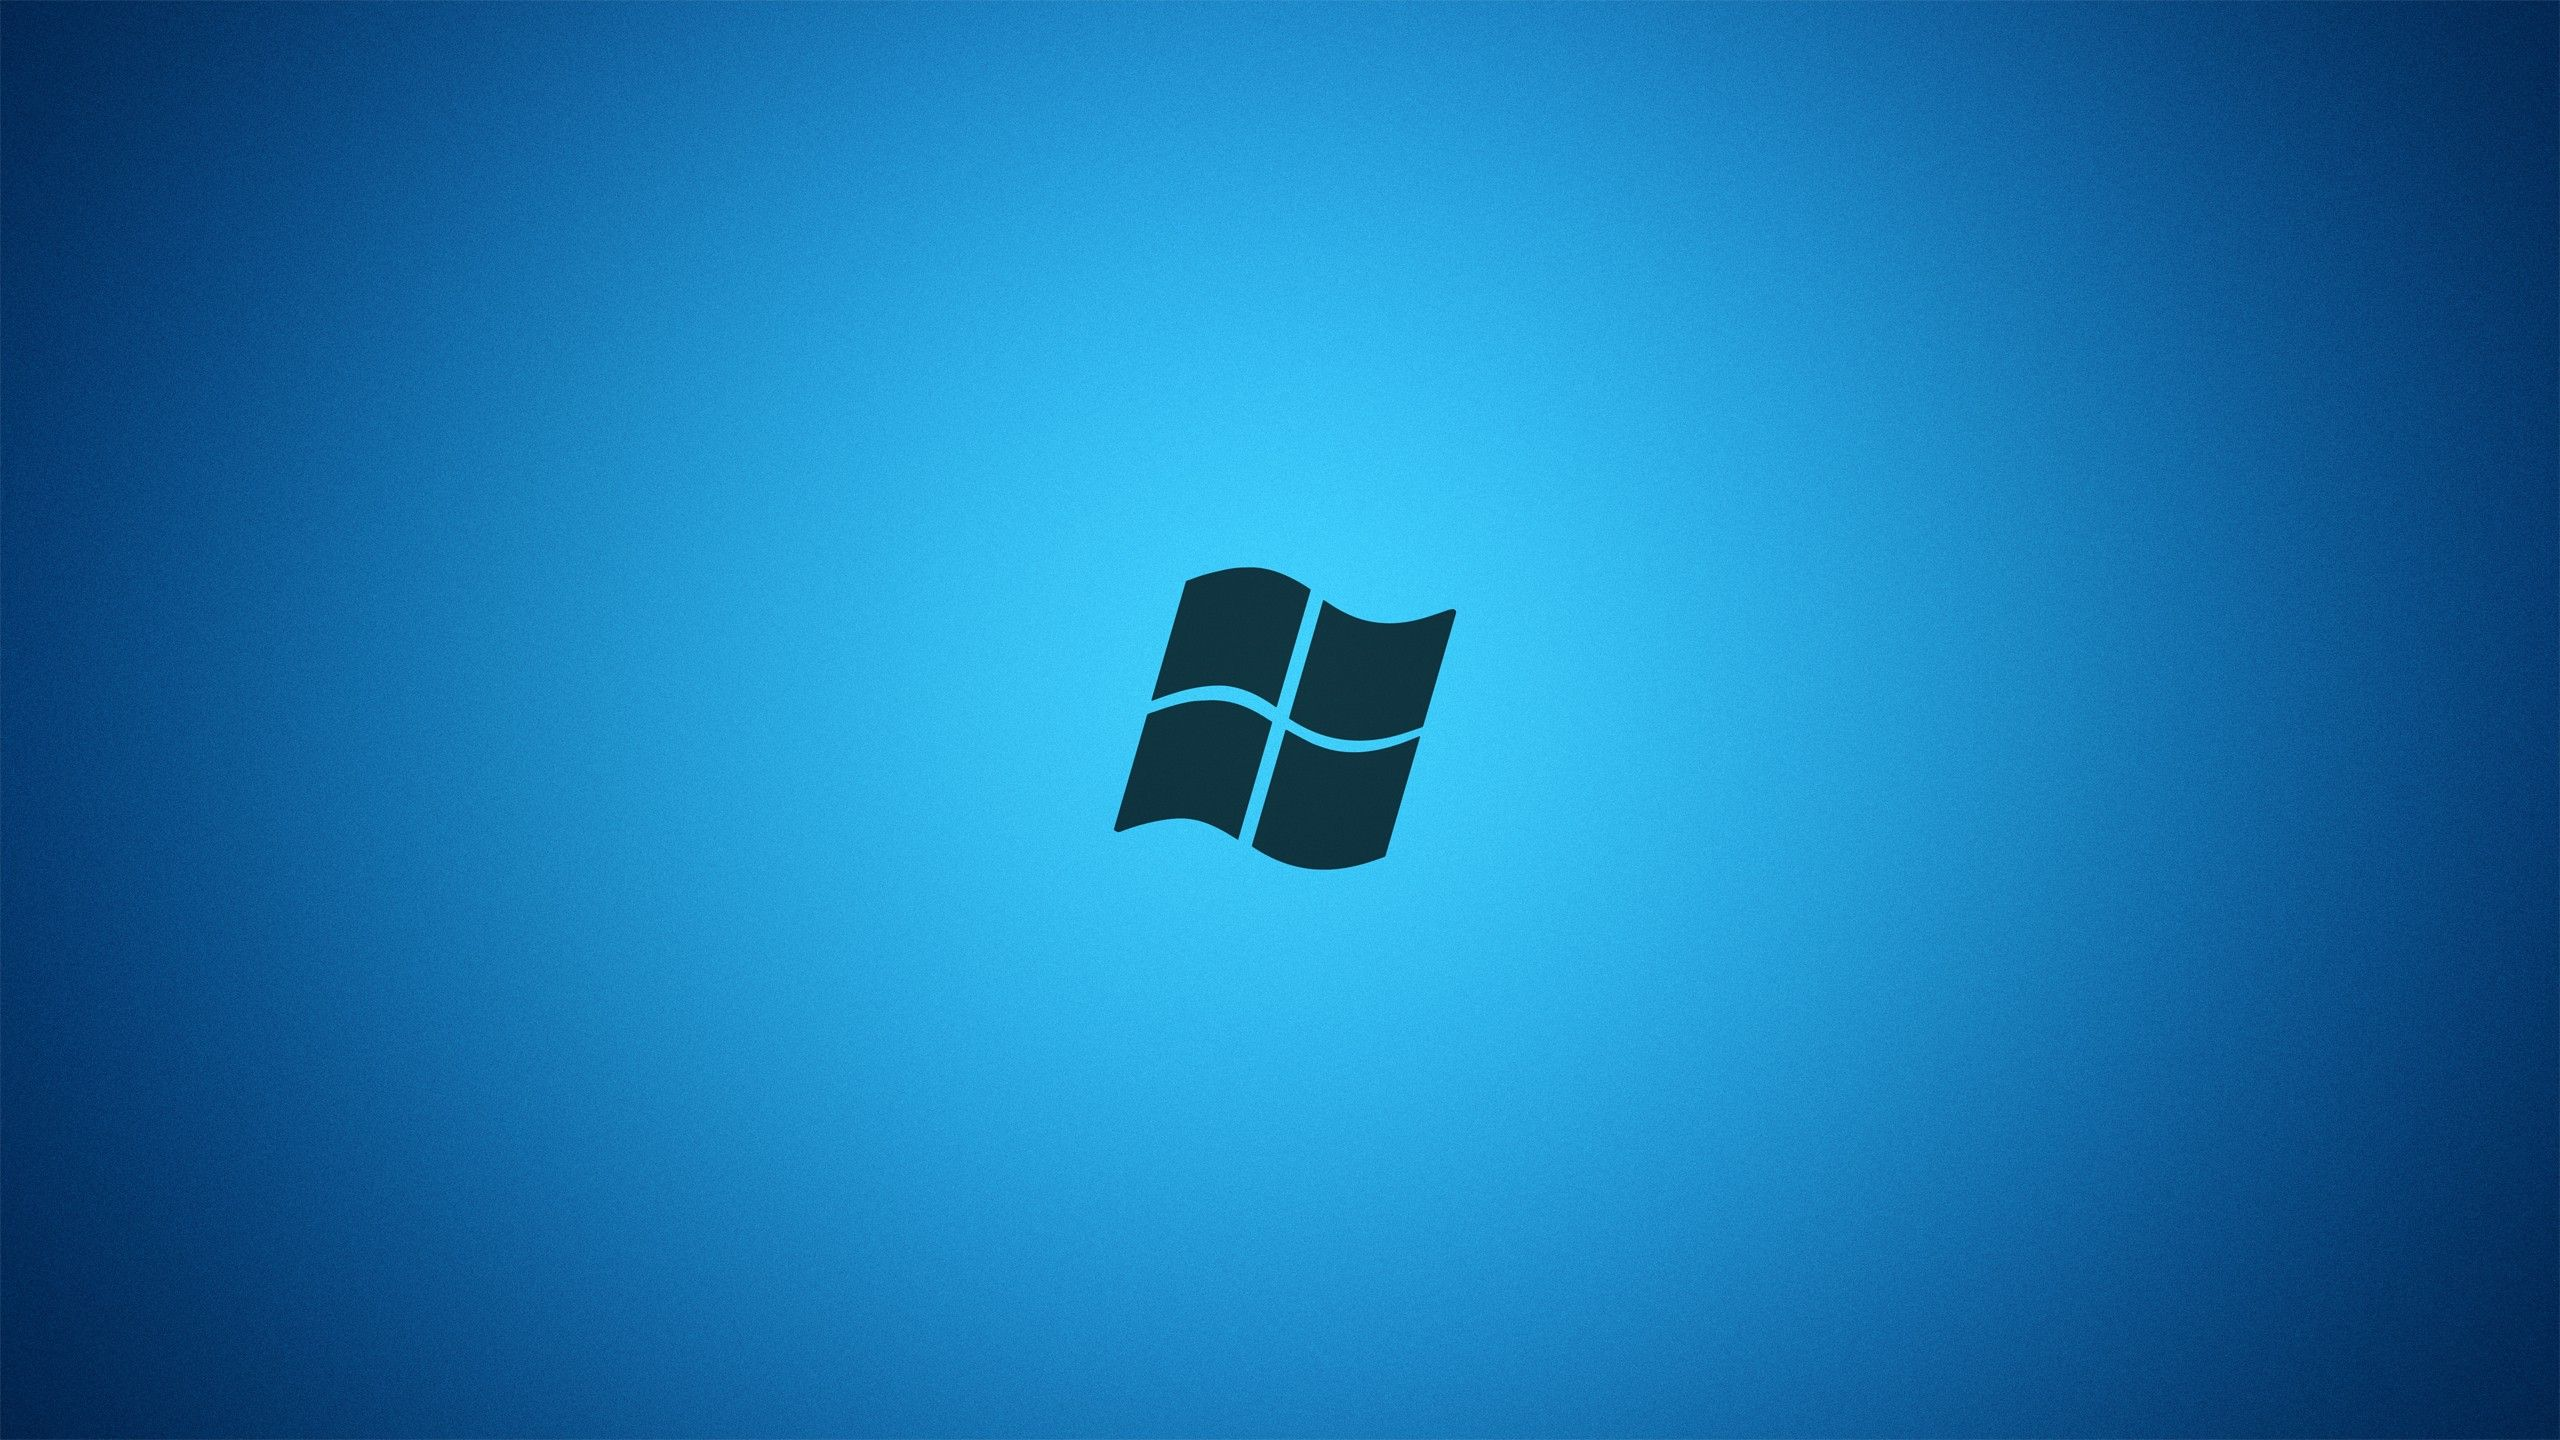 Windows 10 Minimalism Blue Background Yellow Background Windows 8 Microsoft Wind Windows Desktop Wallpaper Windows Wallpaper Windows Vista Wallpaper